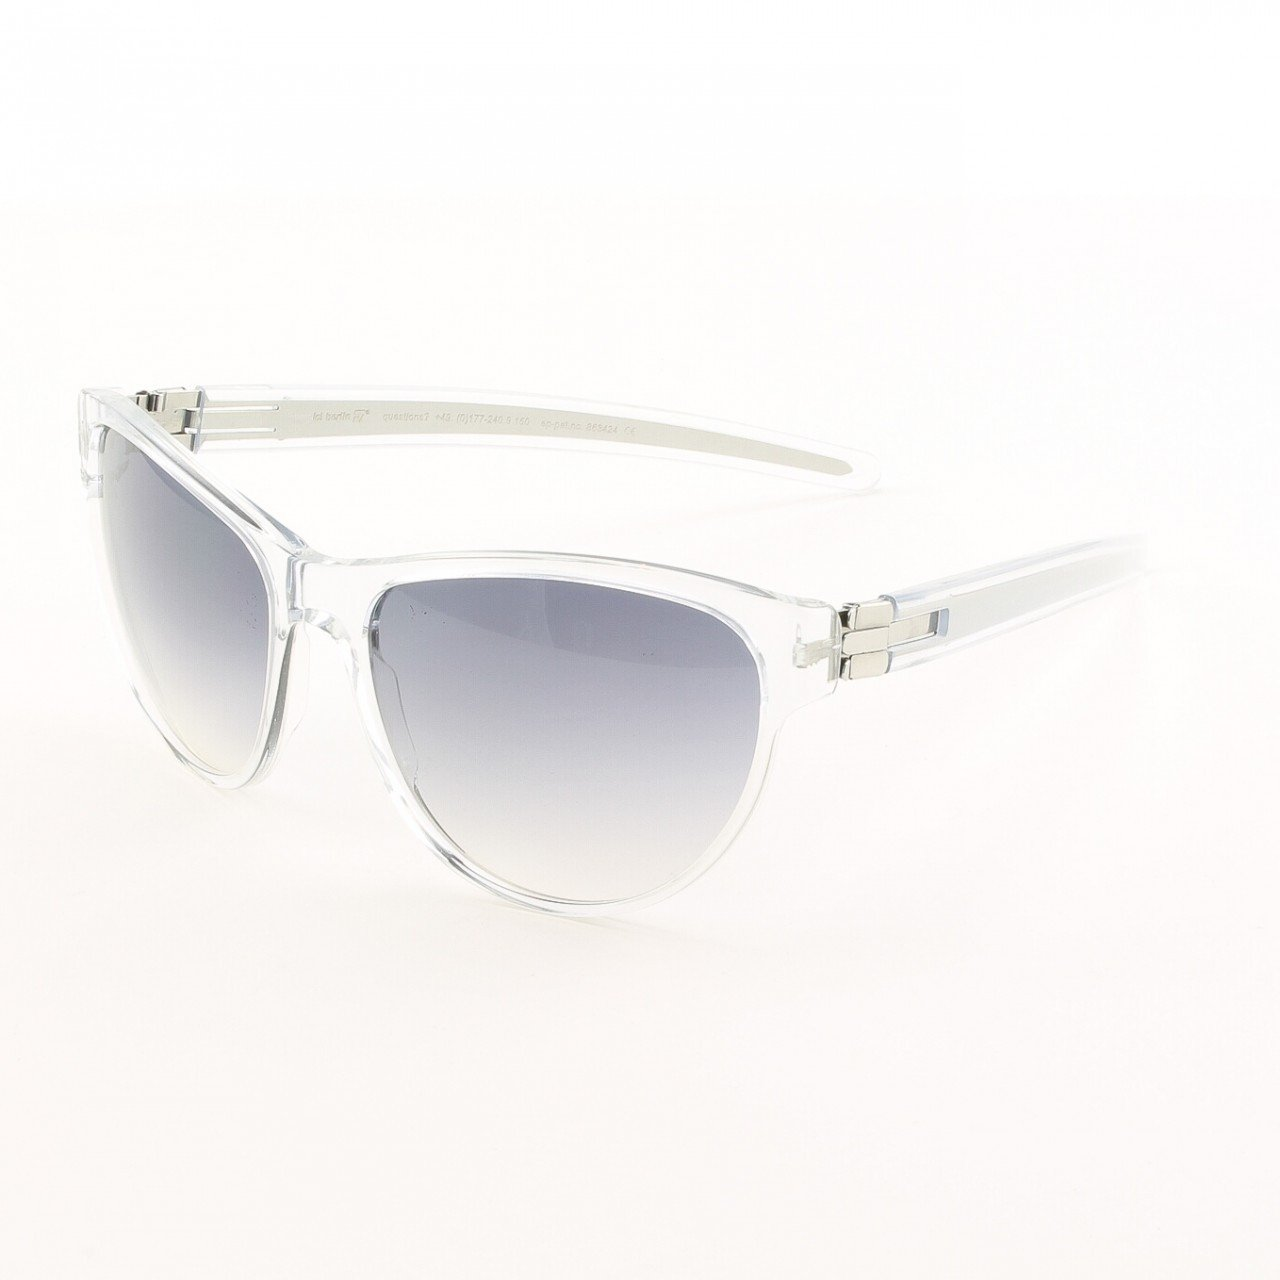 ic! Berlin Dr. Ihab Sunglasses Col. Clear / Chrome with Black Gradient Lenses